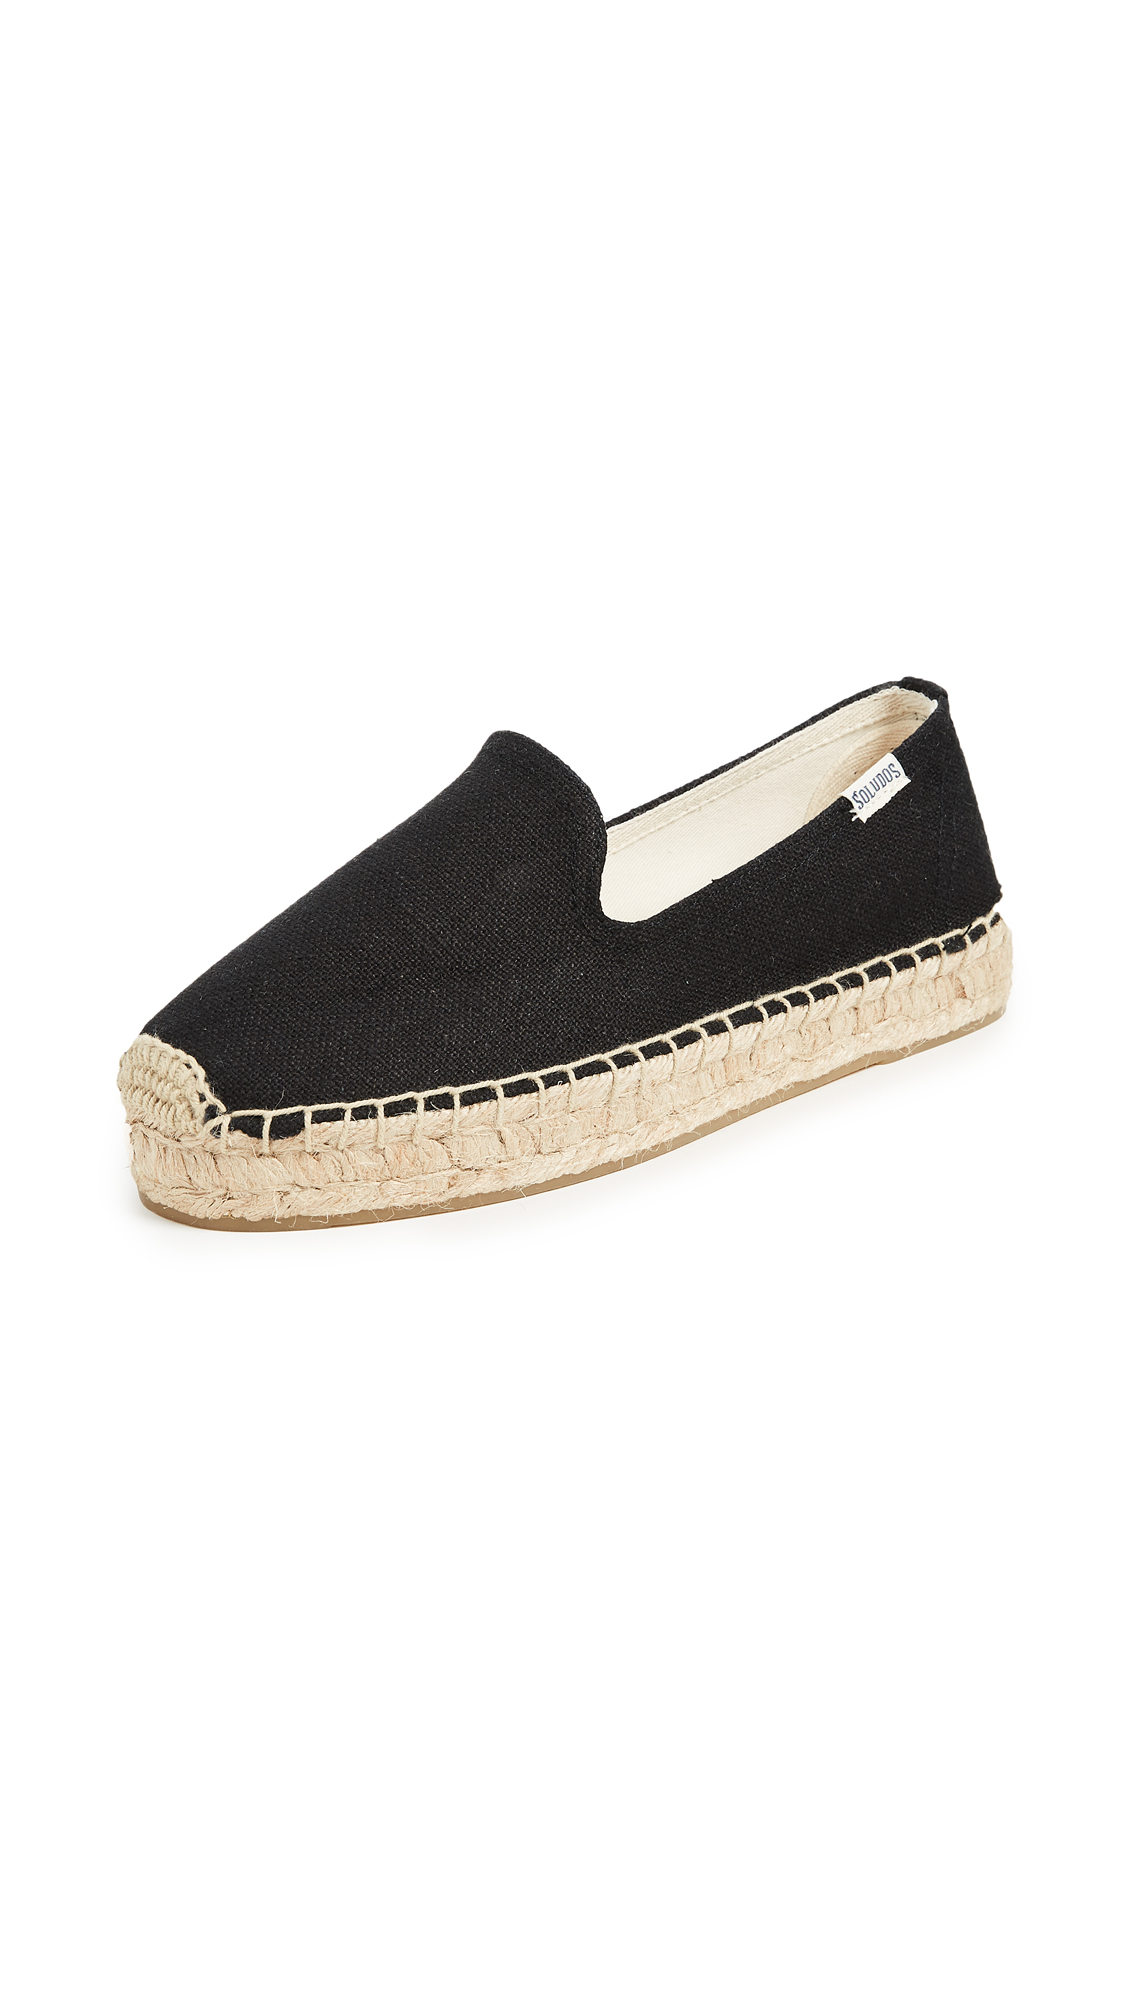 Soludos Platform Smoking Slippers - Black